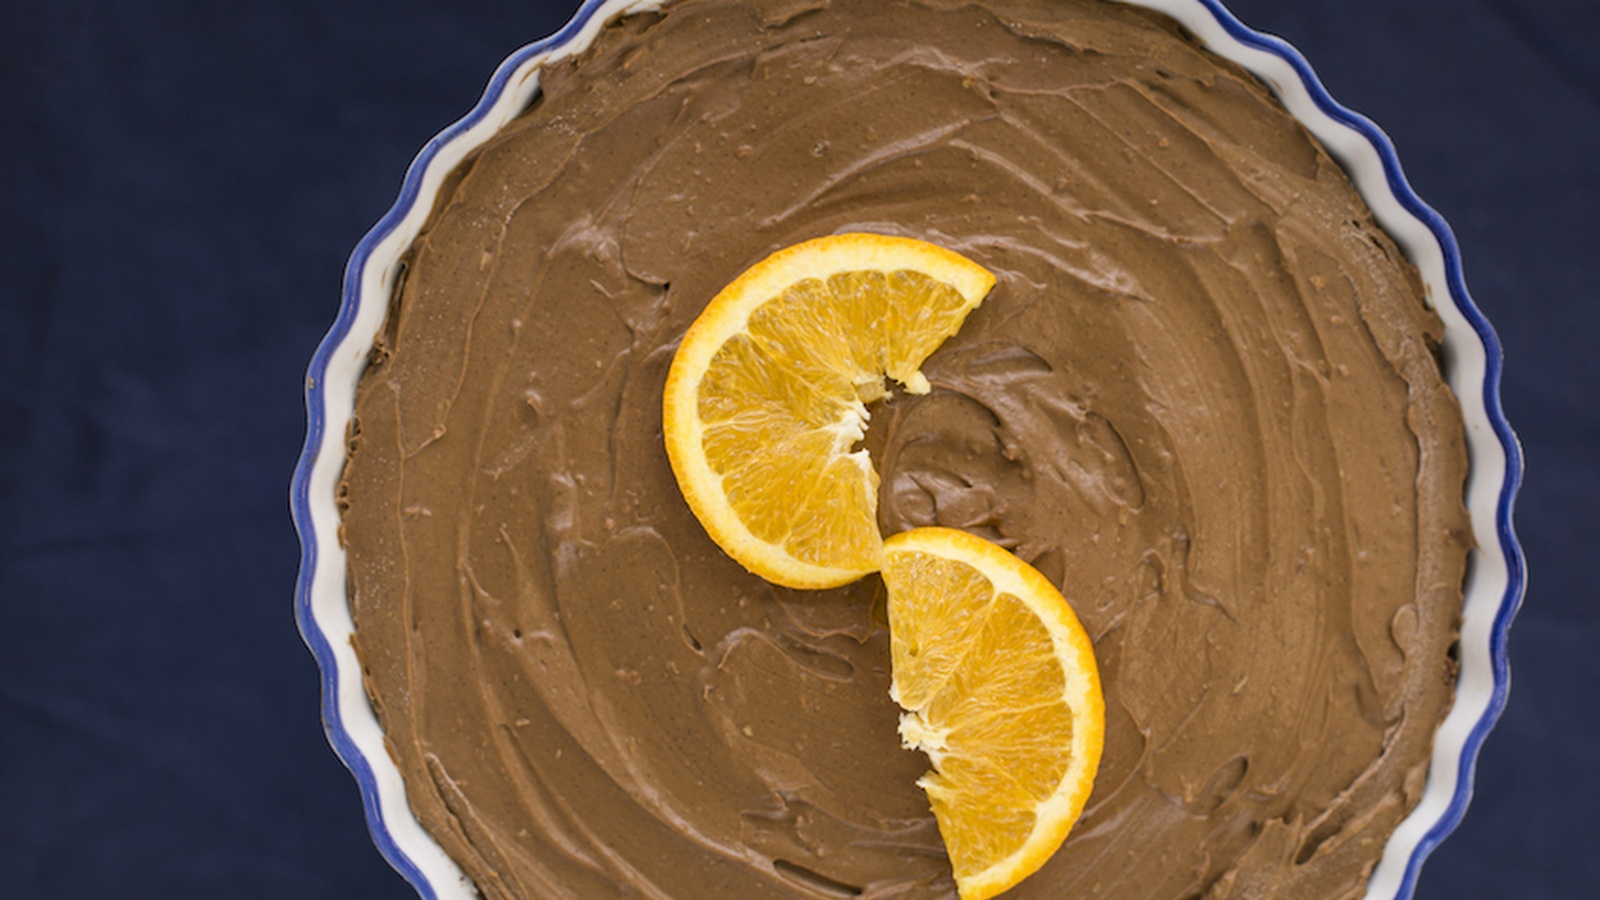 No-Bake Chocolate Orange Tart (Dairy, Nut & Gluten Free)